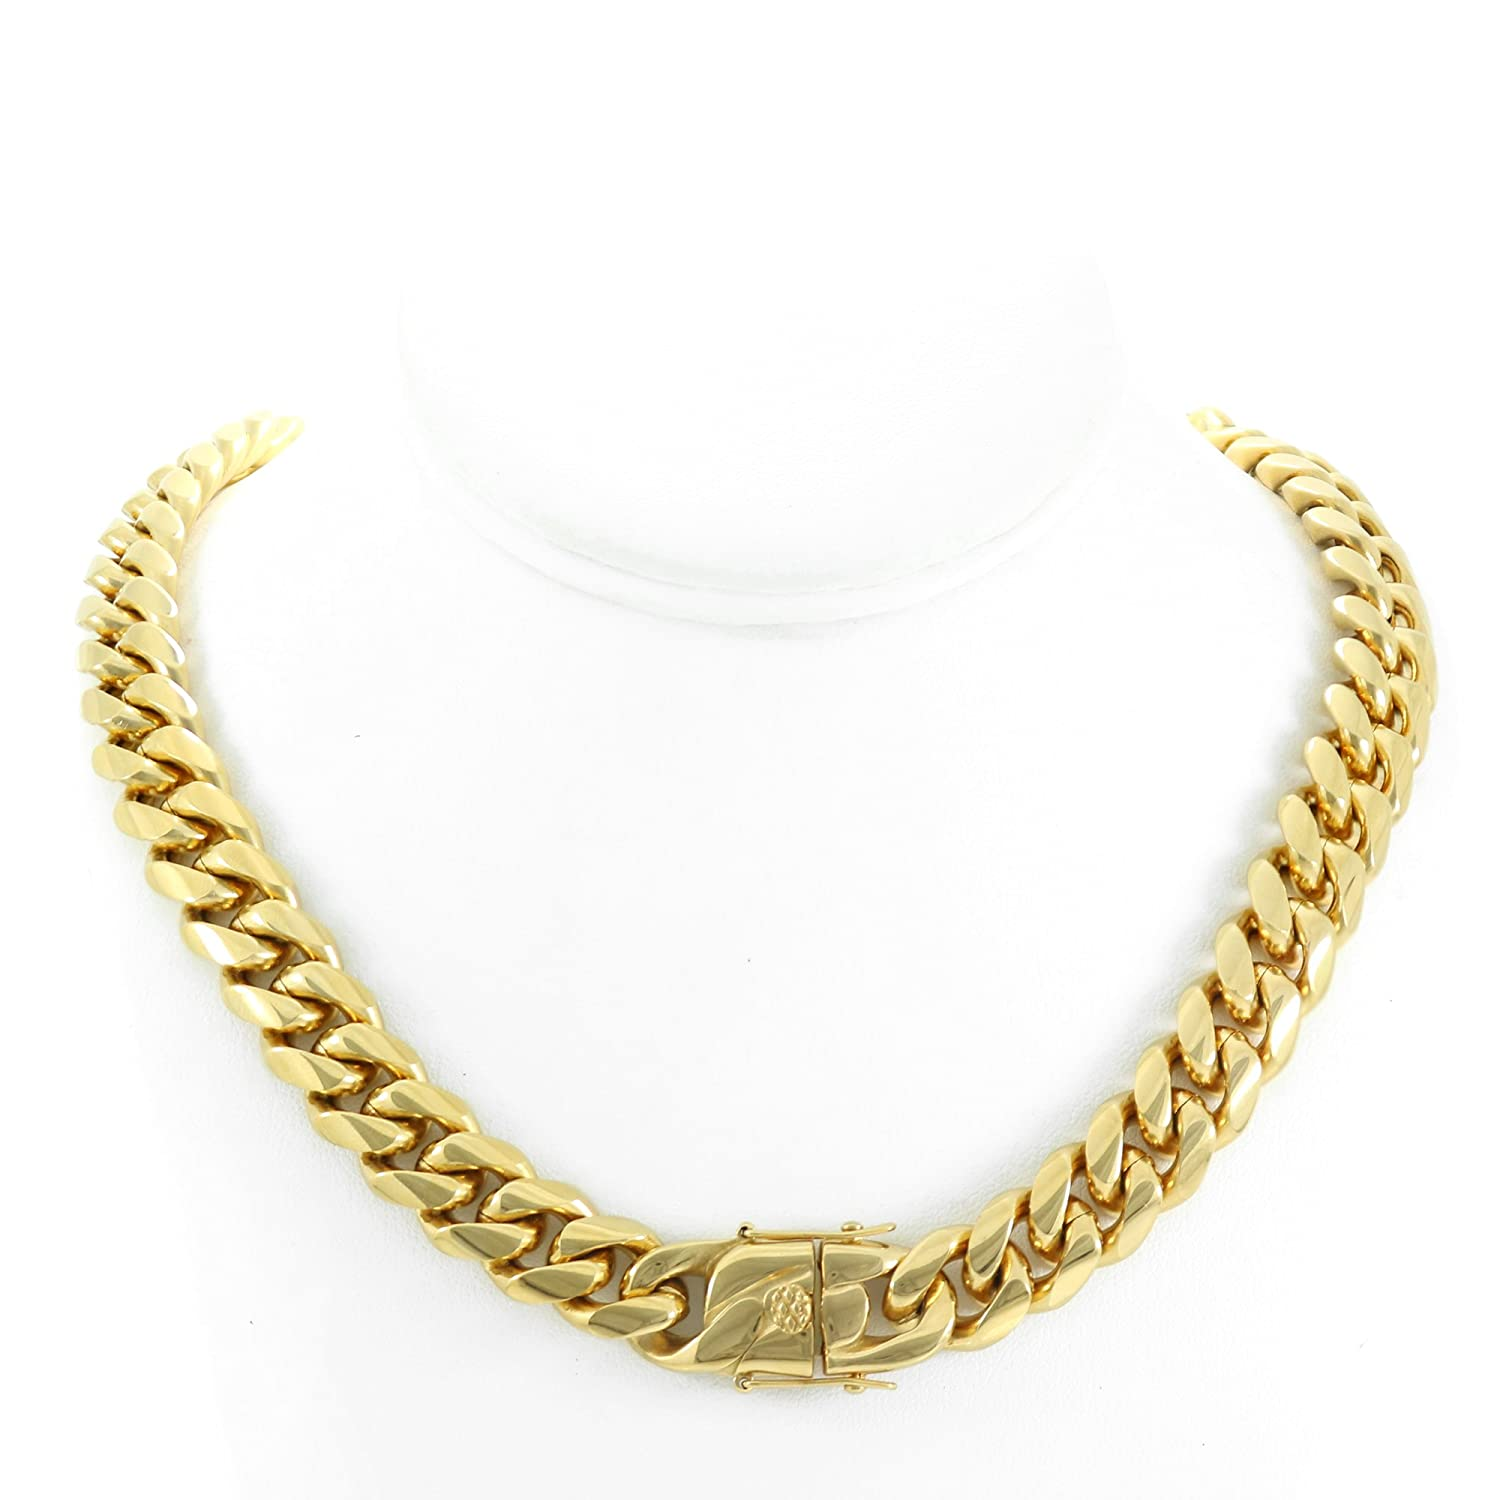 Solid 14k Yellow Gold Finish Stainless Steel 14mm Thick Miami Cuban Link Chain Box Clasp Lock